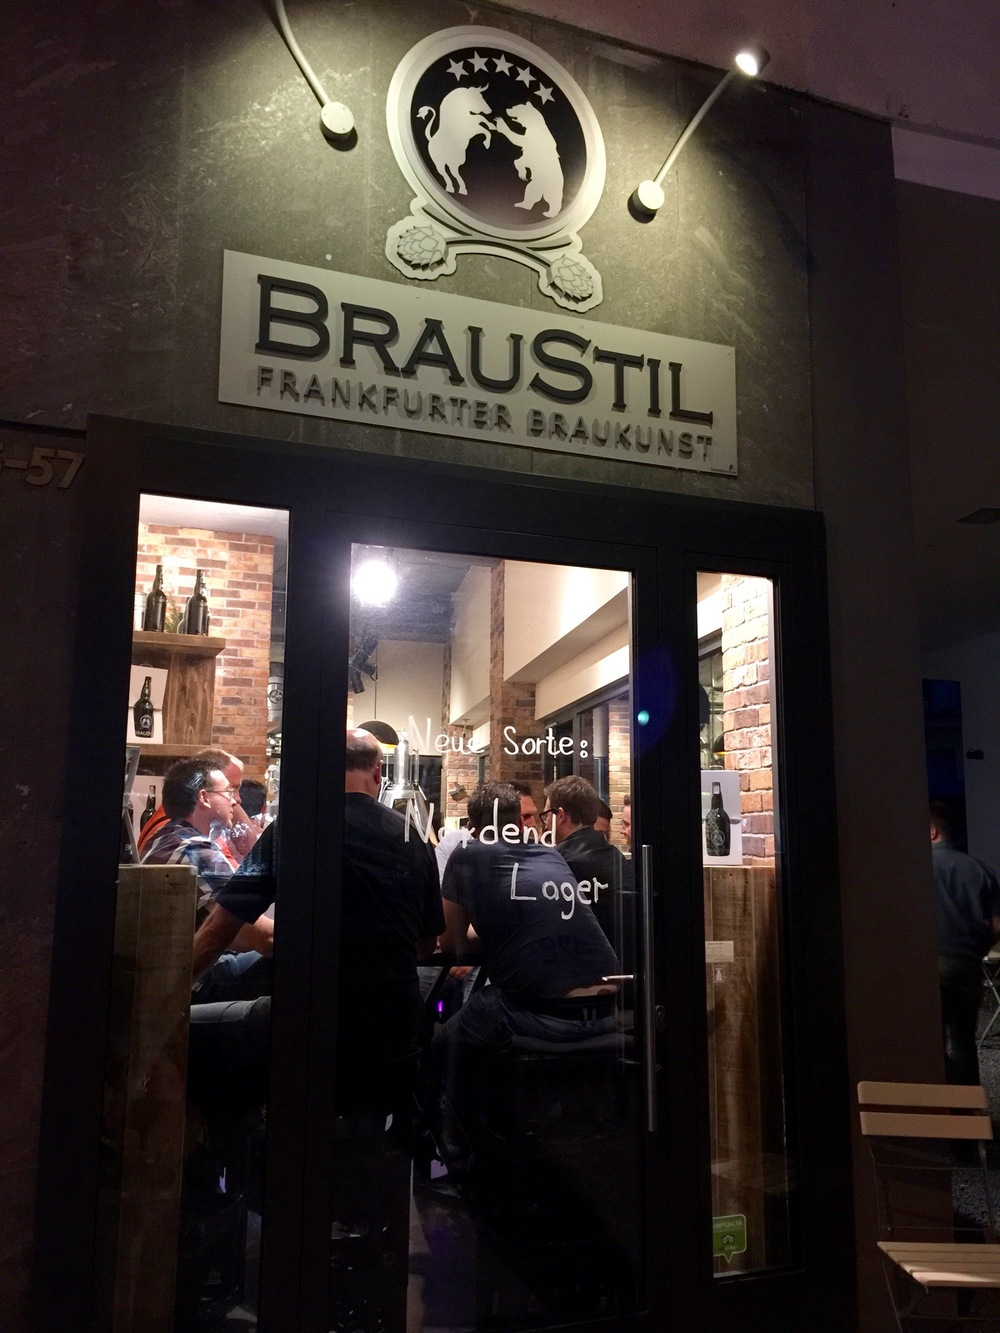 The Braustil brewery